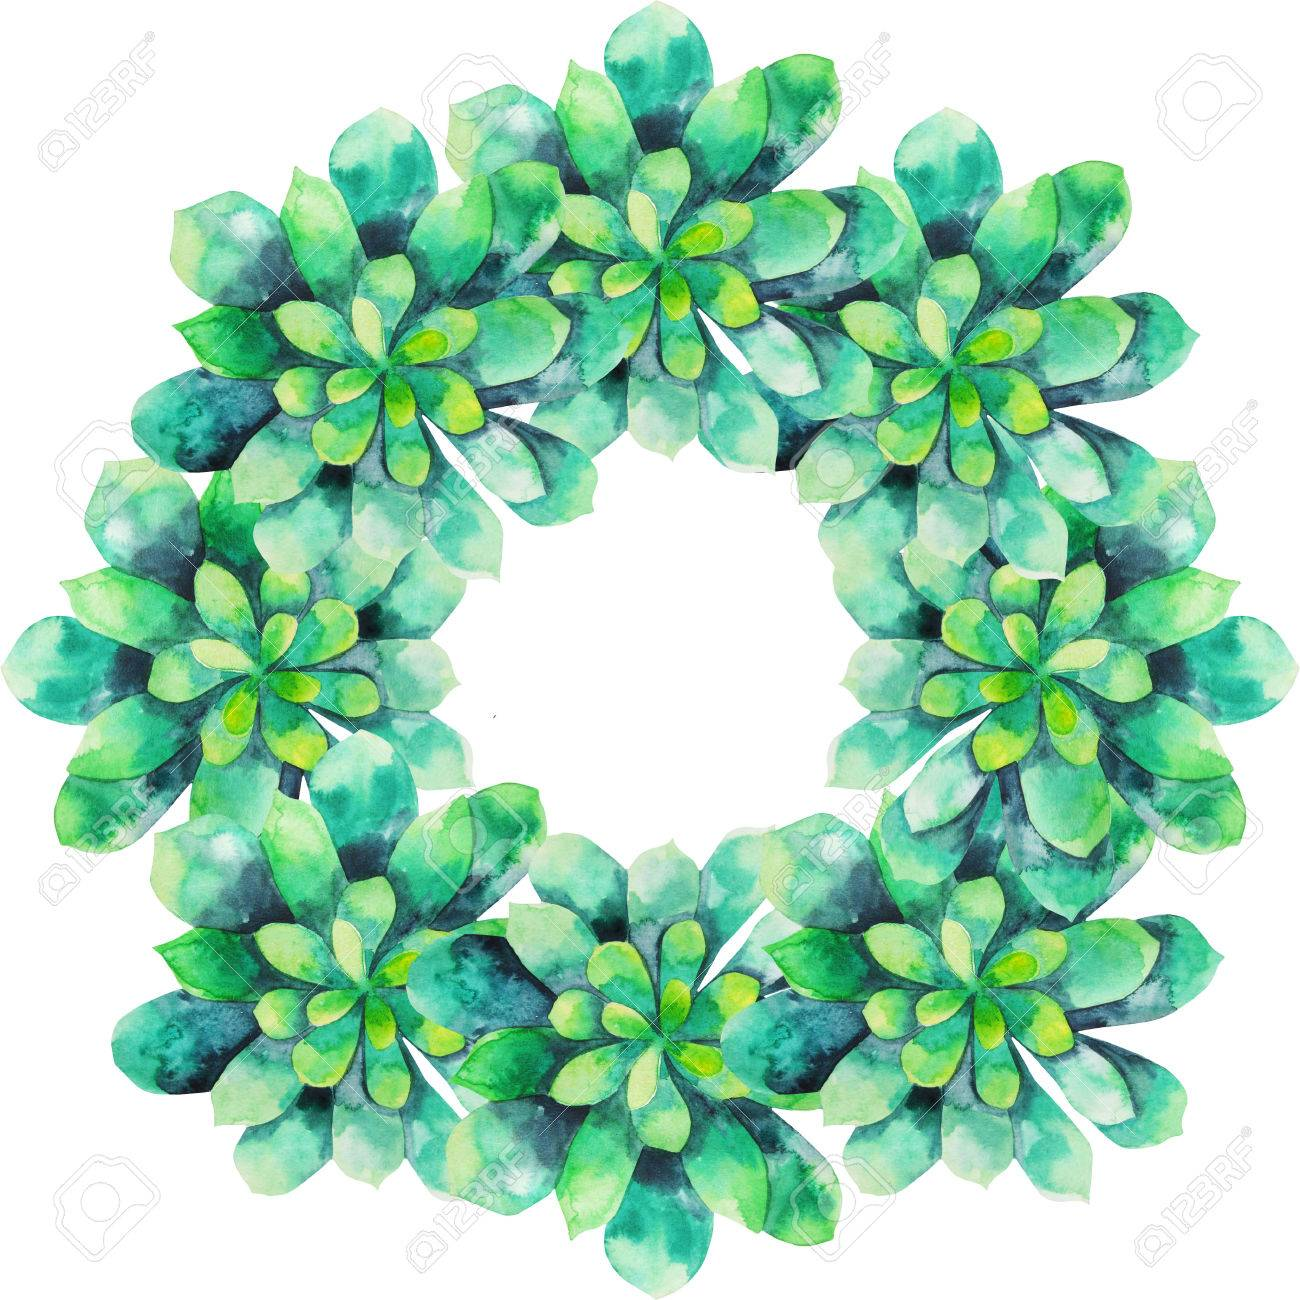 Watercolor Succulent Wreath Isolated On White Background Cute Stock Photo Picture And Royalty Free Image Image 51484741